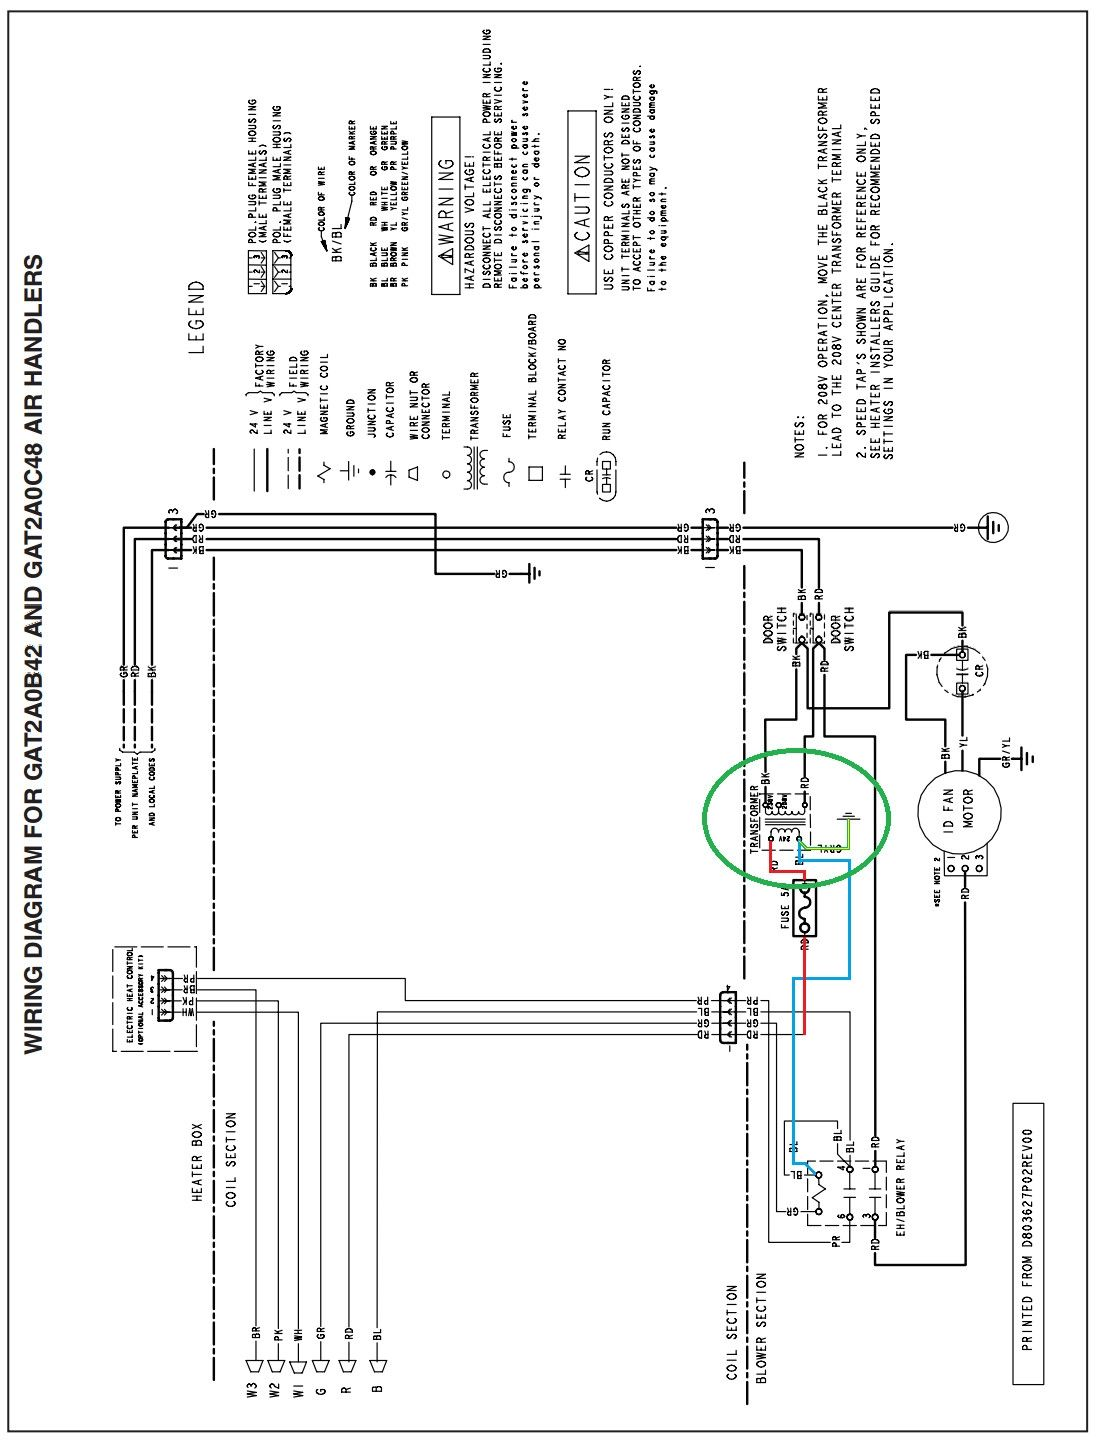 Ahu Hvac System Diagram